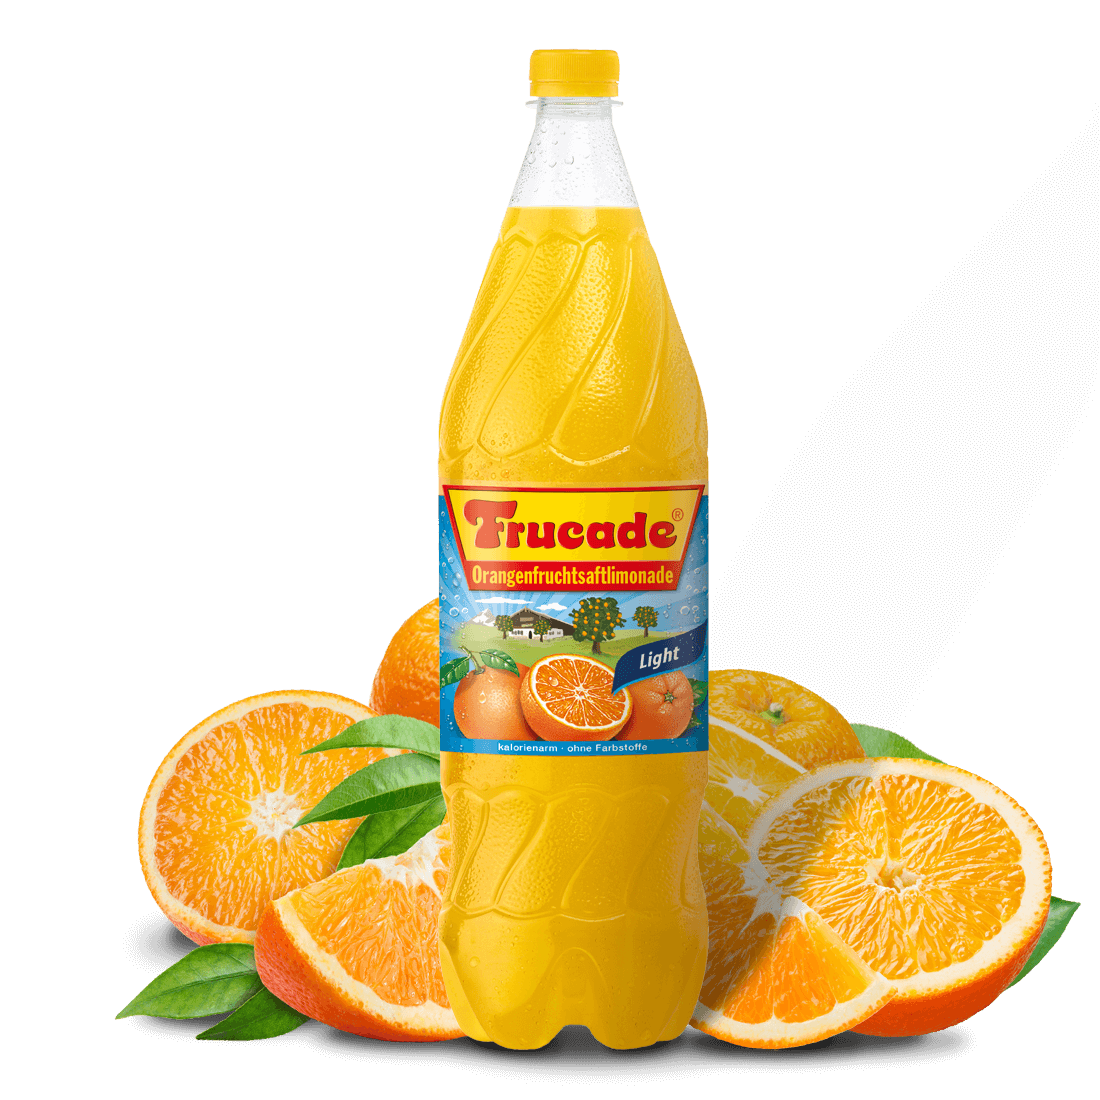 Orangenfruchtsaftlimonade Light